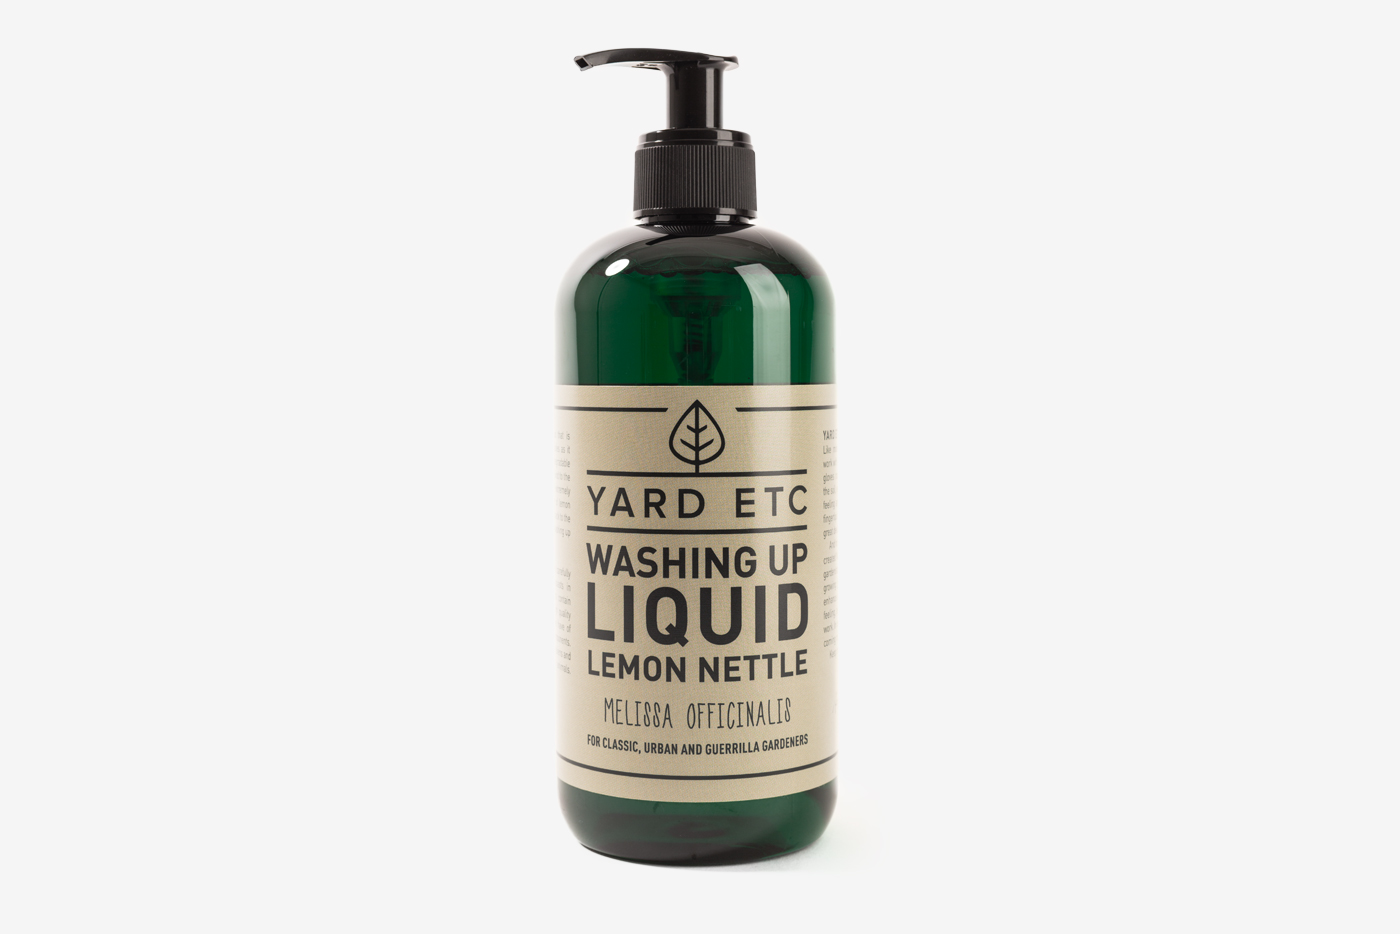 Yard Etc. Washing Up Liquid